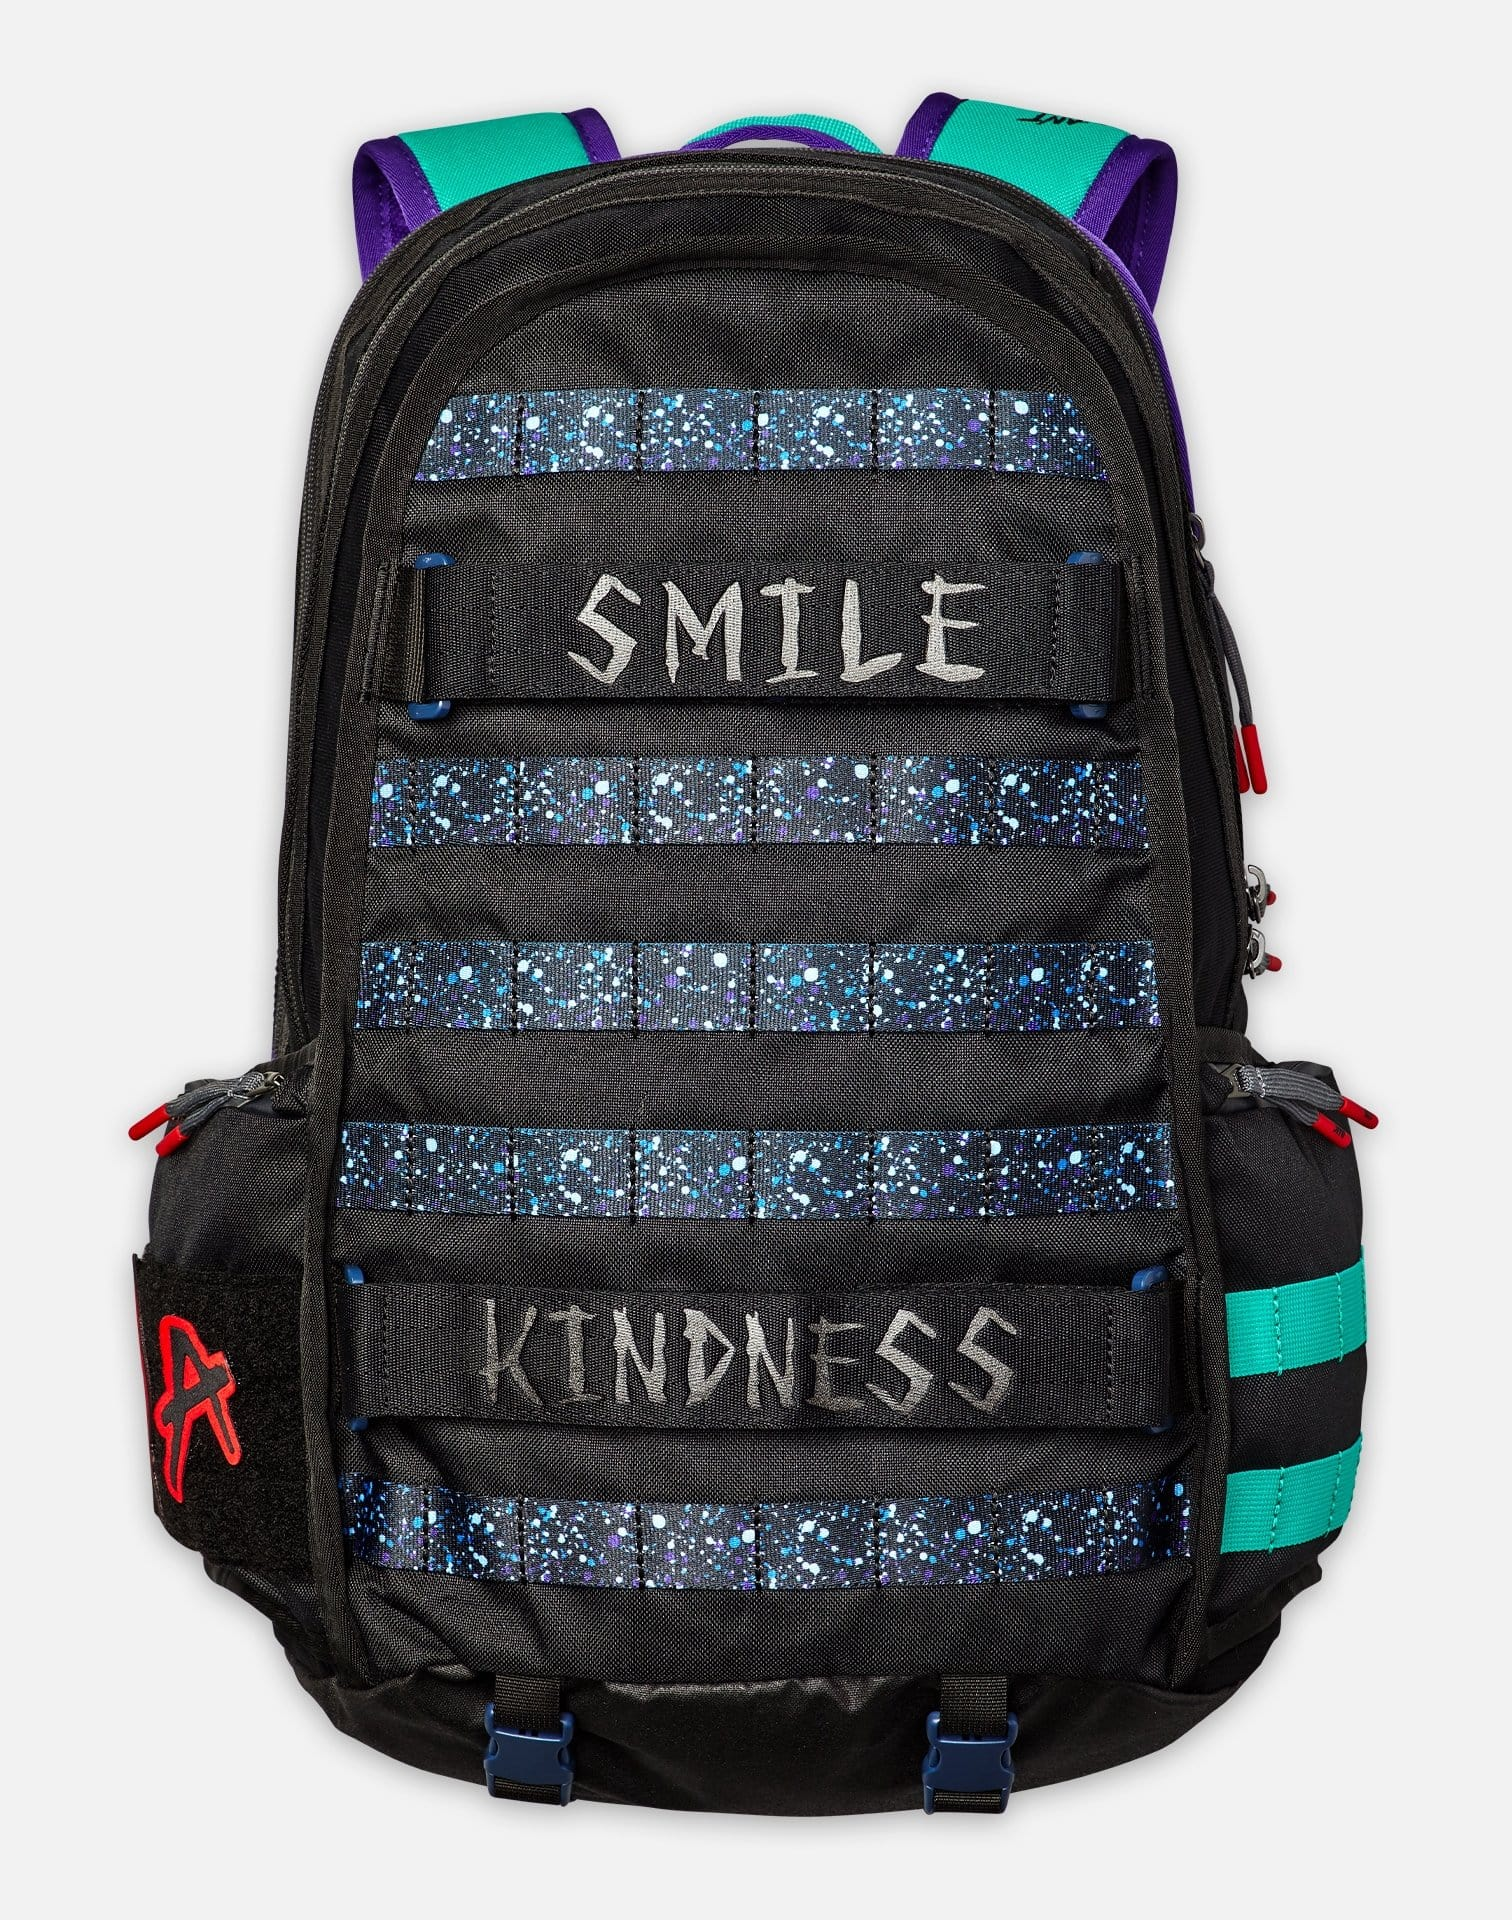 Nike DESIREE SB DOERNBECHER FREESTYLE SKATE BACKPACK